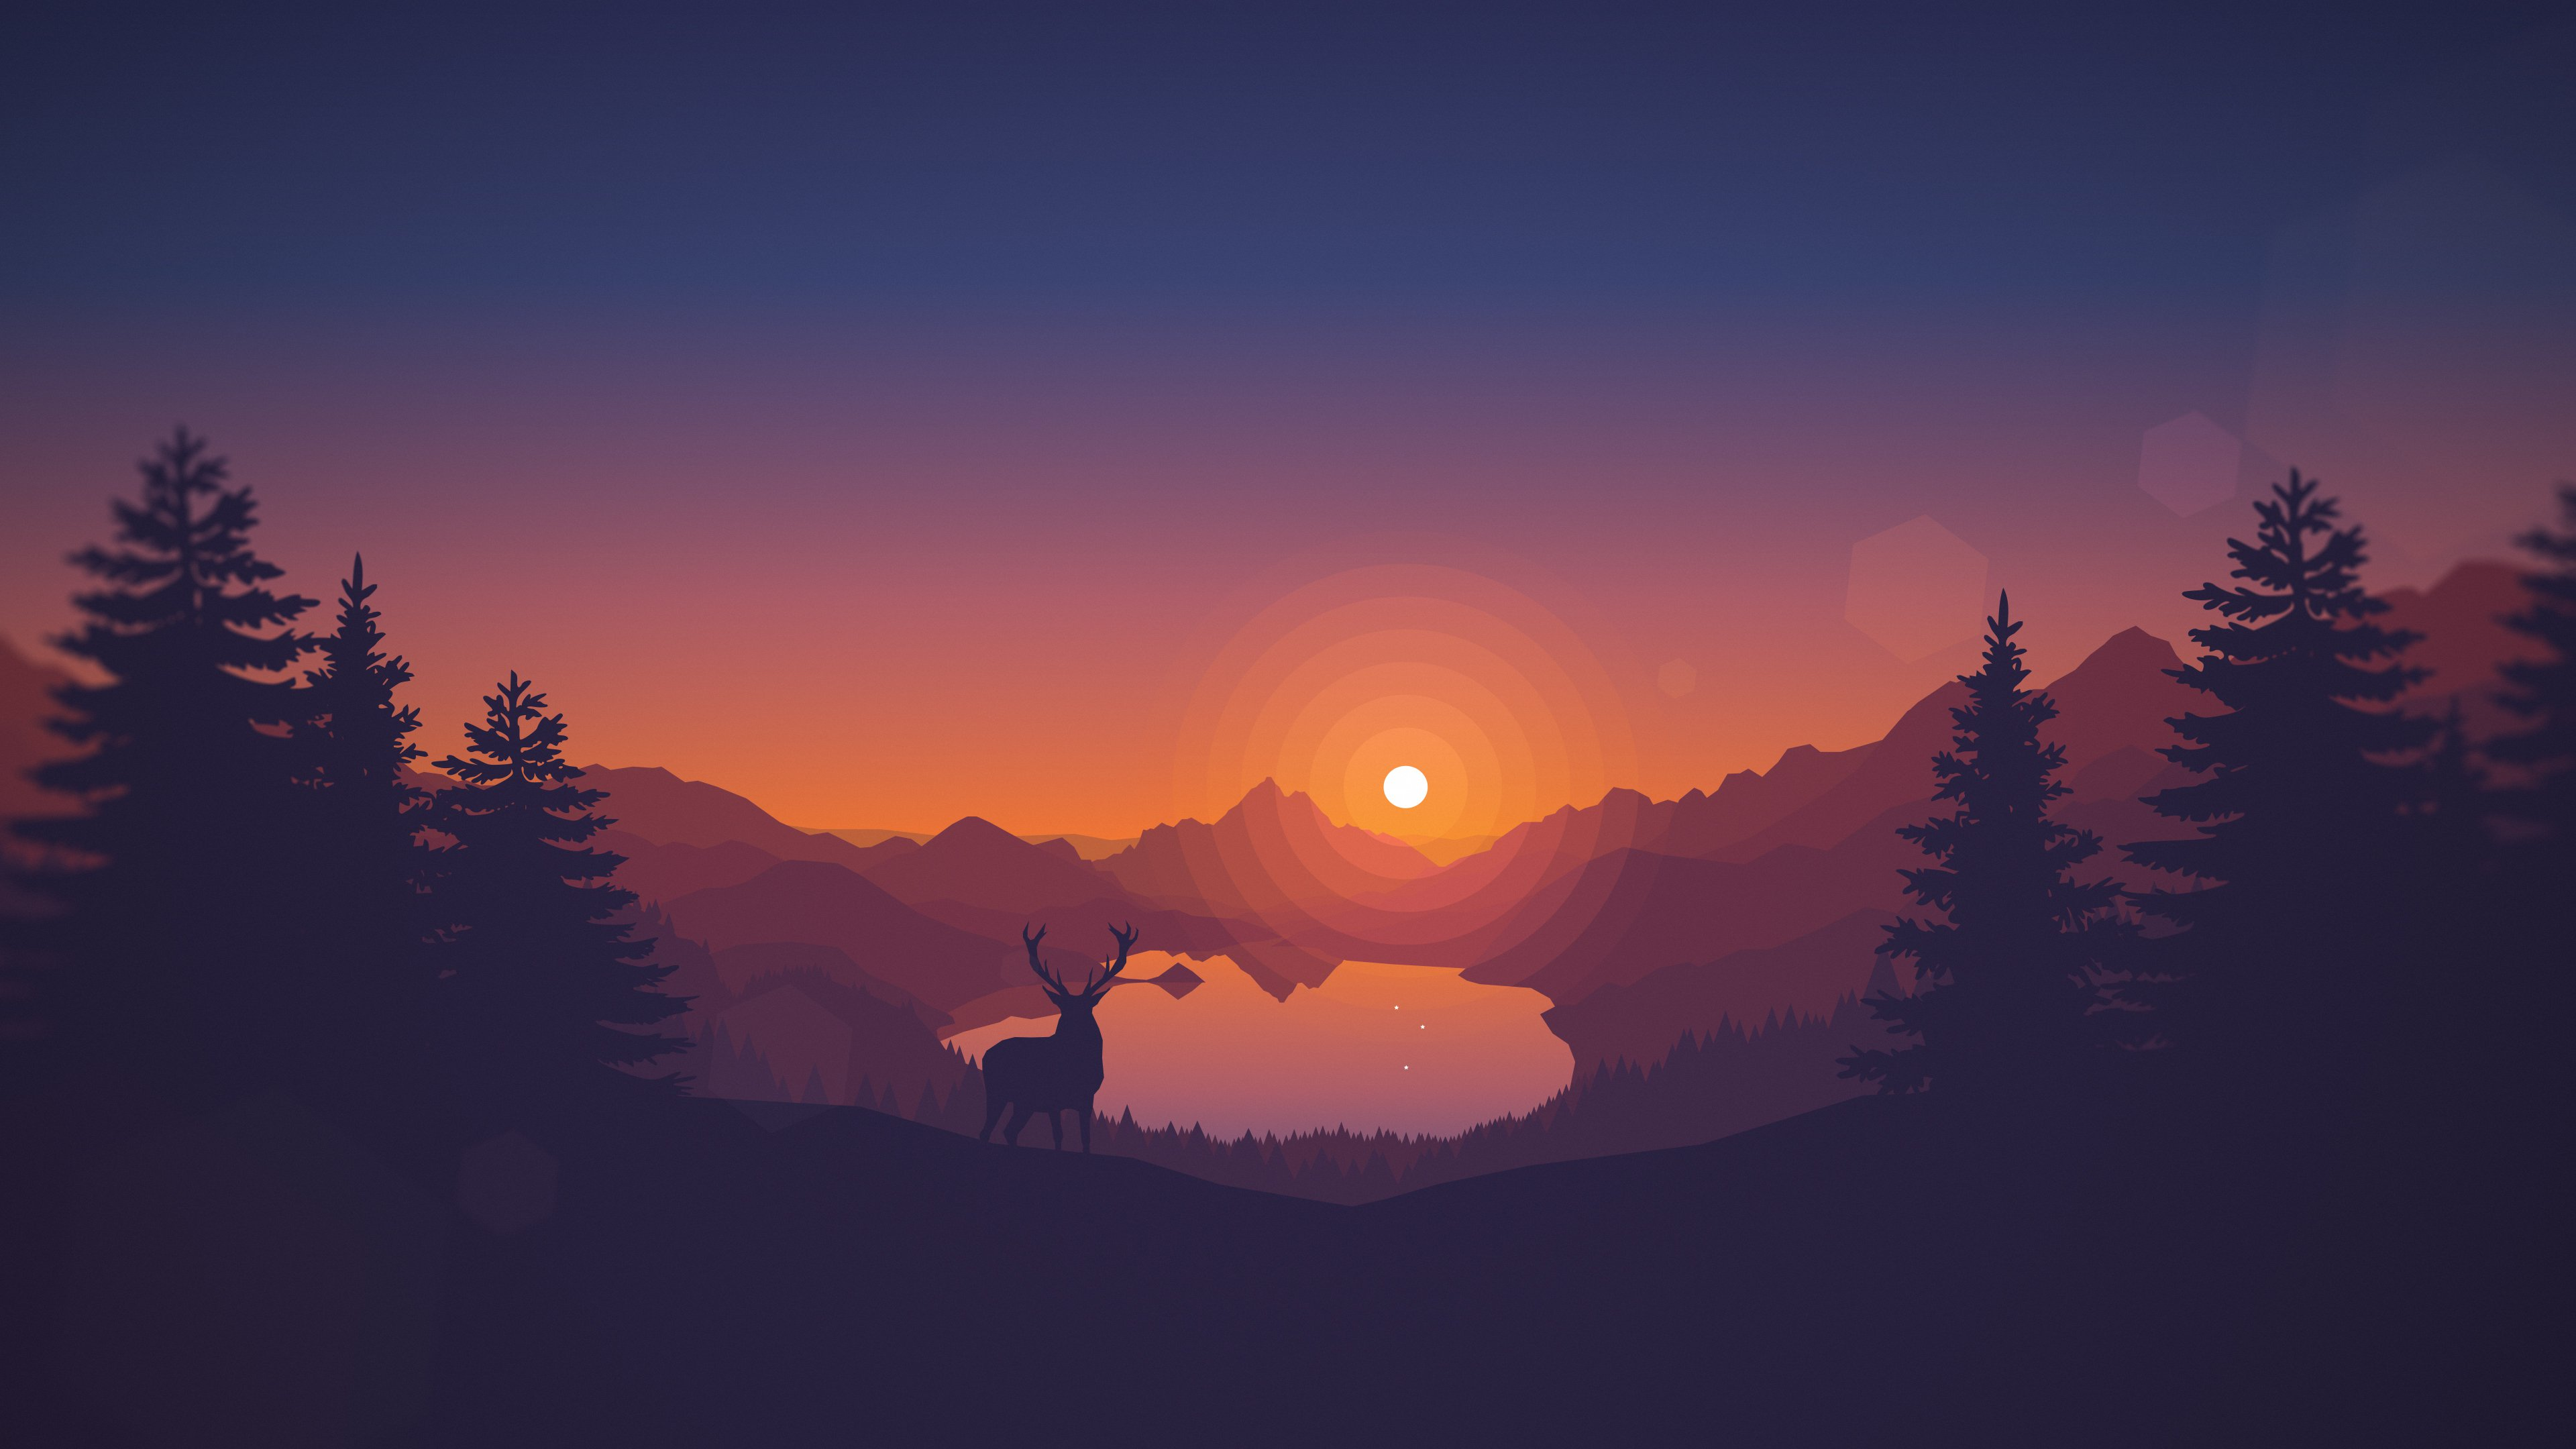 firewatch widescreen desktop wallpaper 419